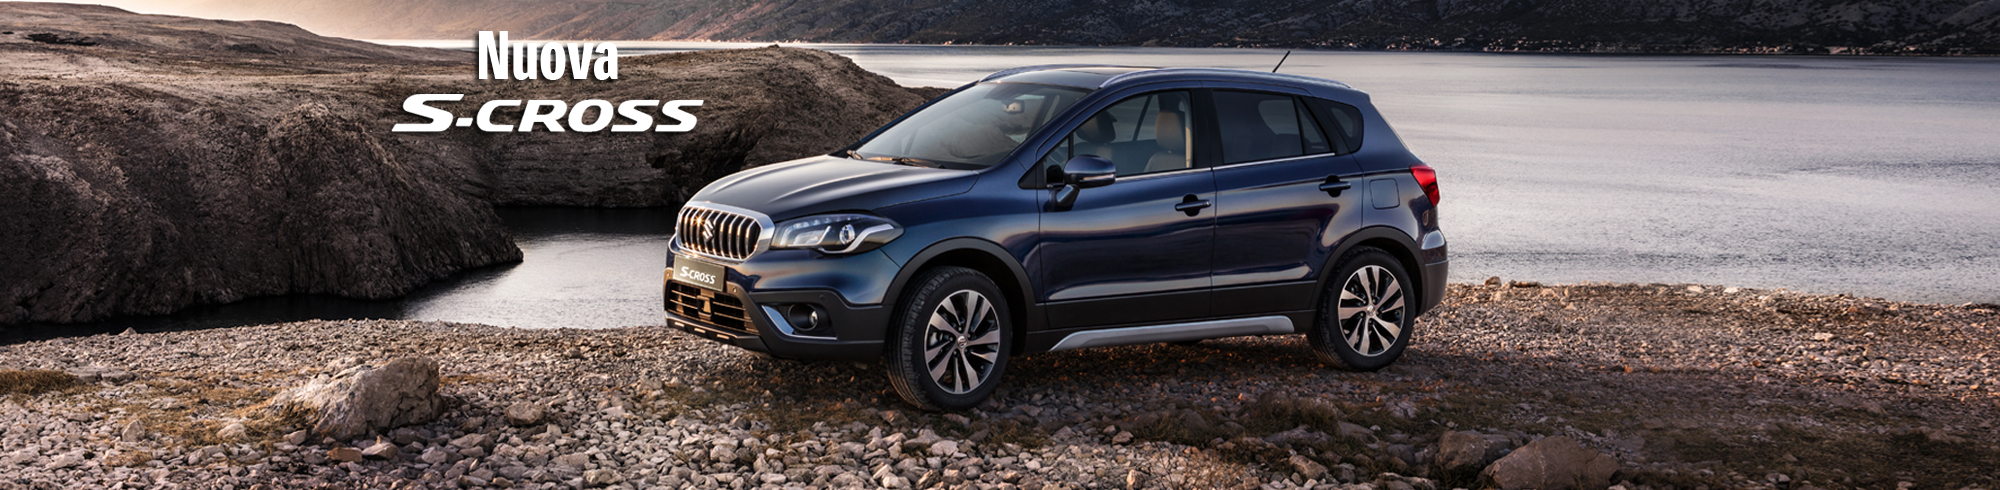 2017-05 s-cross no pa